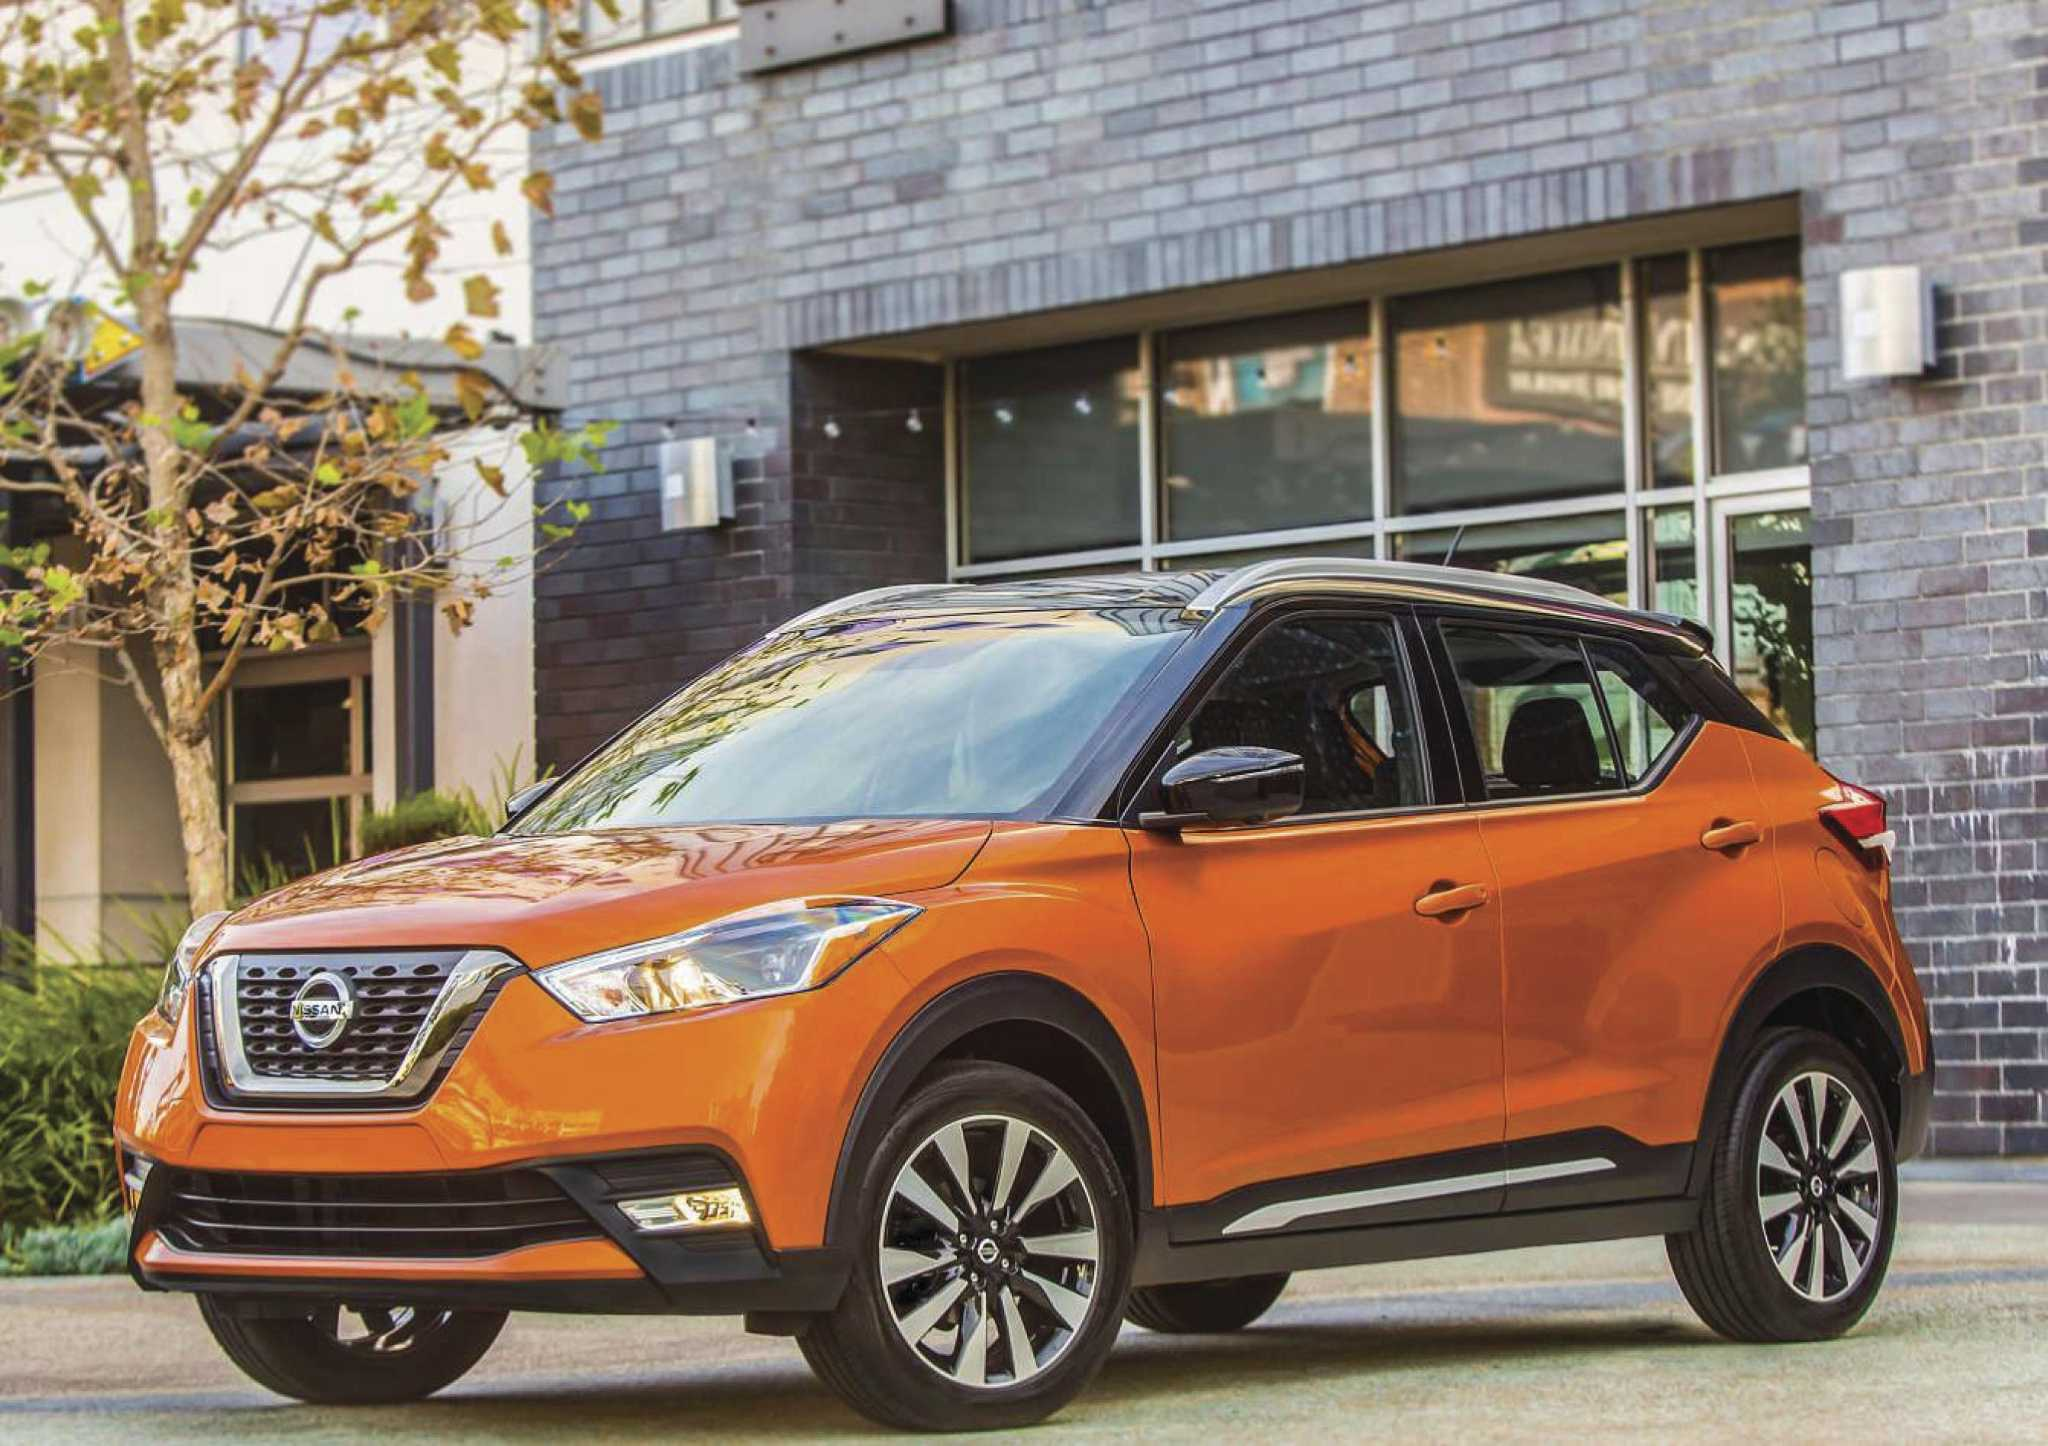 2018 Kicks: Nissan introduces a newsmall crossover beginning at just $17,990